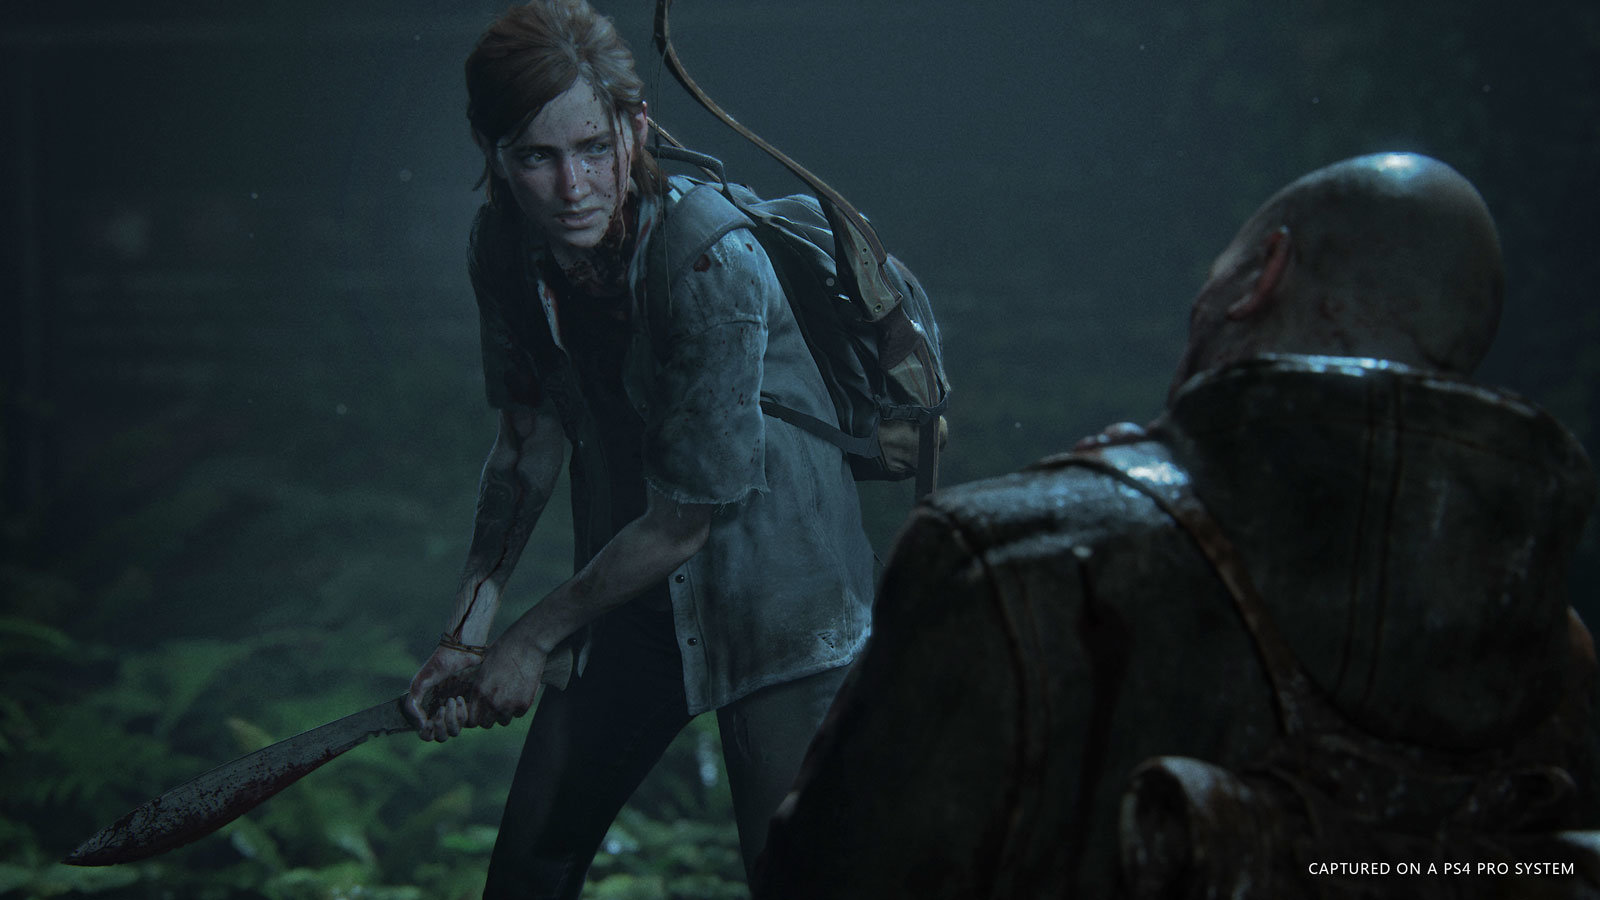 The Last Of Us Part 2 Release Date Hinted At By Voice Actress